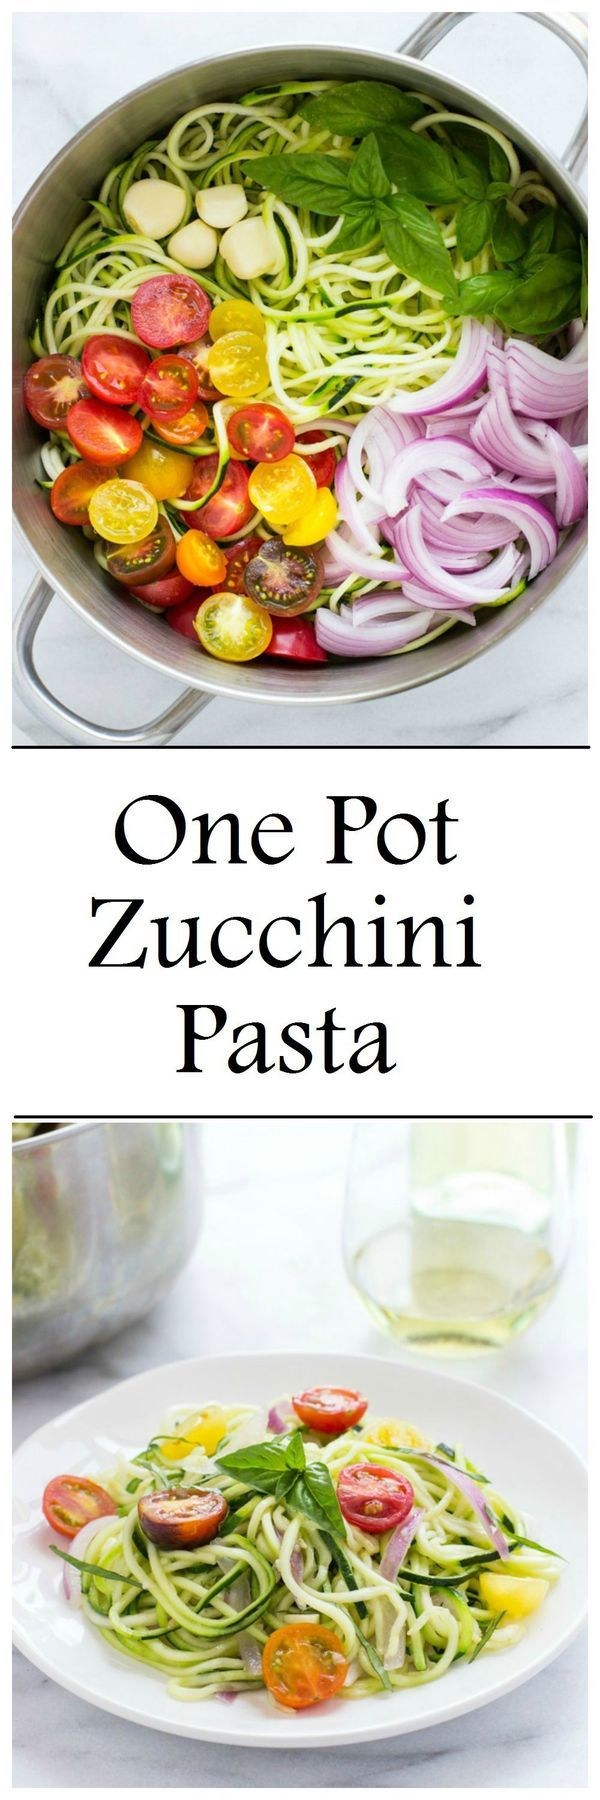 One Pot Zucchini Pasta- a simple and easy veggie-packed meal! #cleaneating #lowcarb #grainfree